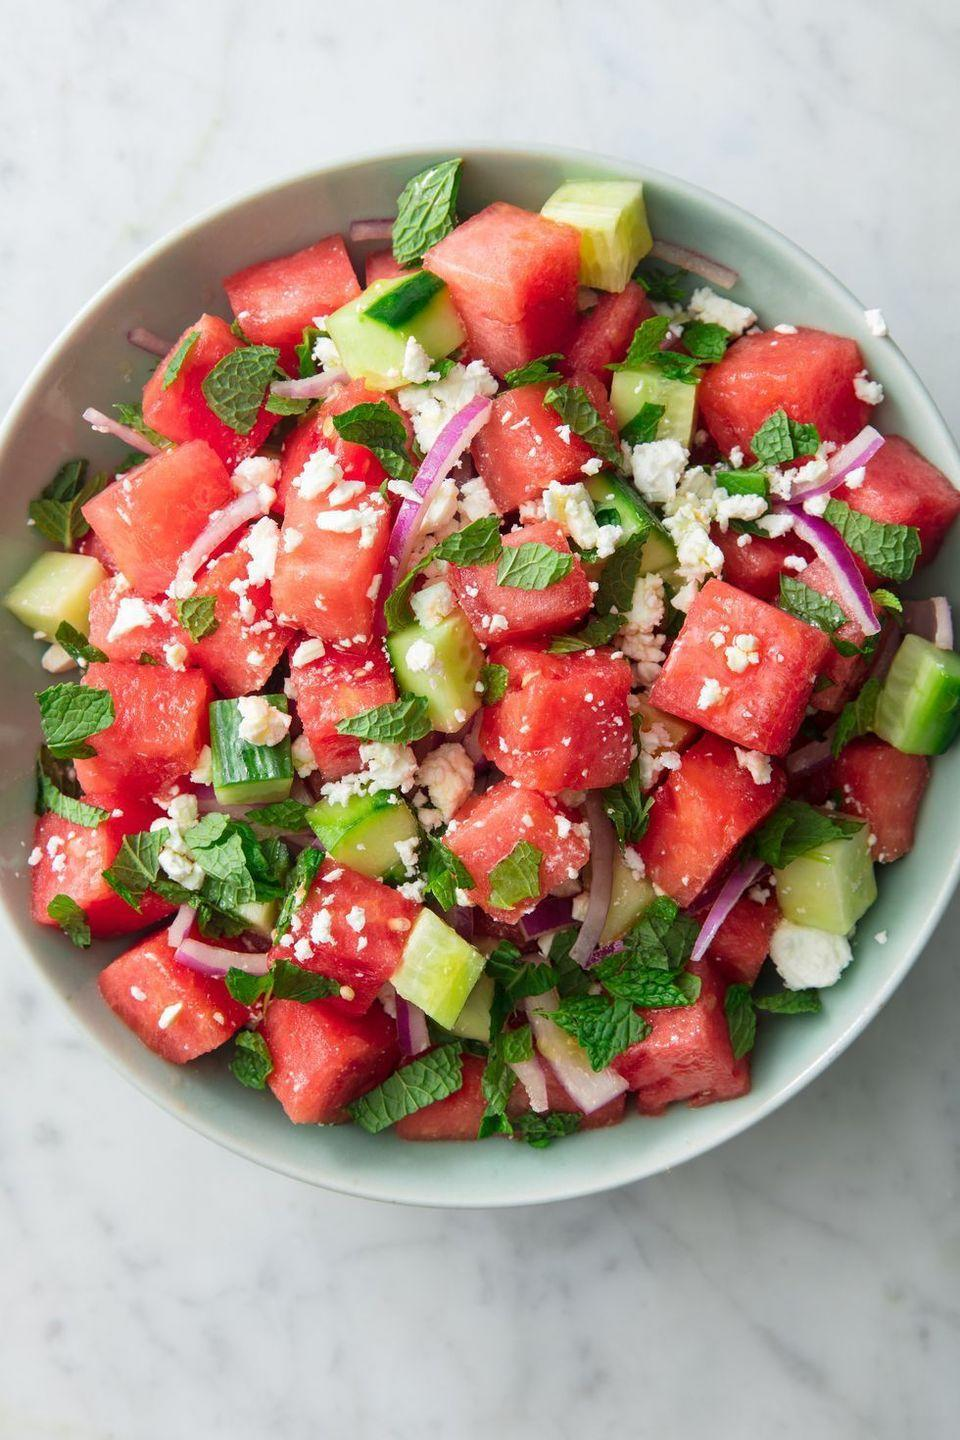 "<p>Watermelon + cucumbers is one of the most refreshing combos of all time. Throw in some mint, red onion, and feta and toss it all with a very simple vinaigrette (just olive oil + red wine vinegar), and you've got yourself a mean summer salad. </p><p>Get the <a href=""https://www.delish.com/uk/cooking/recipes/a32998257/watermelon-salad-feta-mint-recipe/"" rel=""nofollow noopener"" target=""_blank"" data-ylk=""slk:Watermelon Feta Salad"" class=""link rapid-noclick-resp"">Watermelon Feta Salad</a> recipe.</p>"